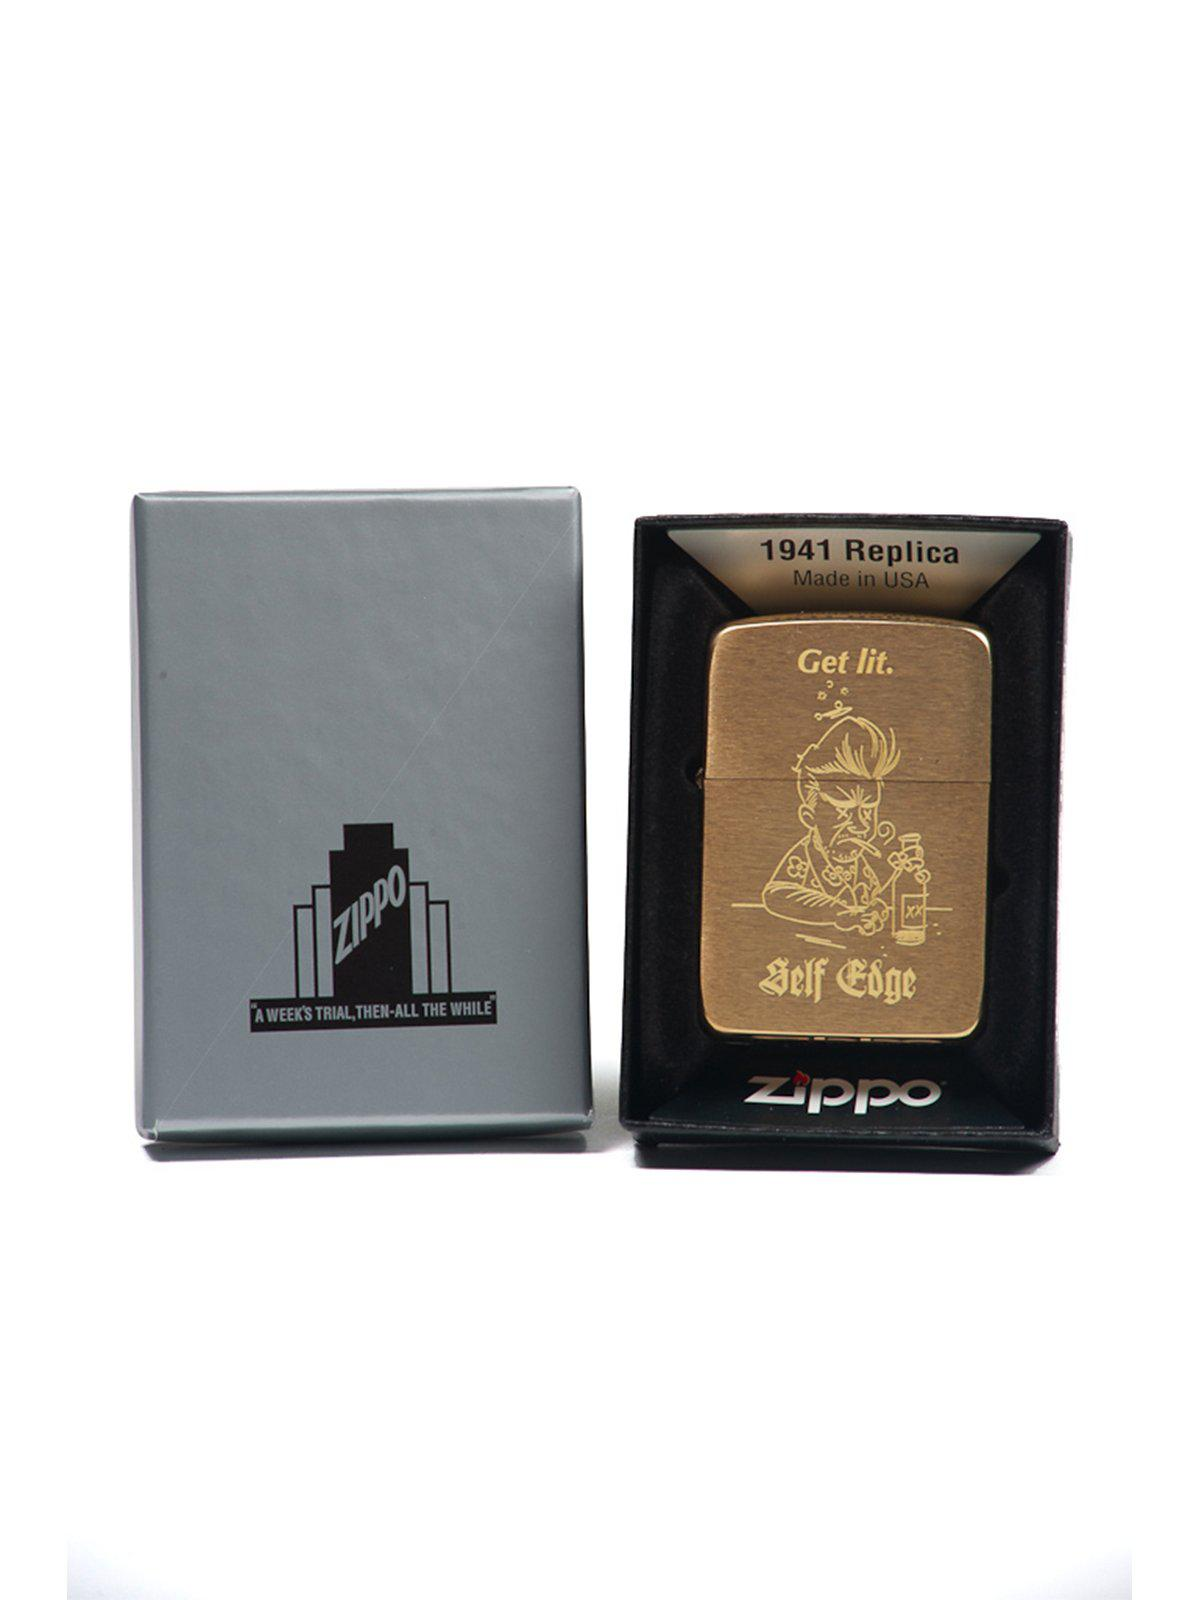 Self Edge Zippo Vintage 1941 Repro Lighter Get Lit - MORE by Morello Indonesia